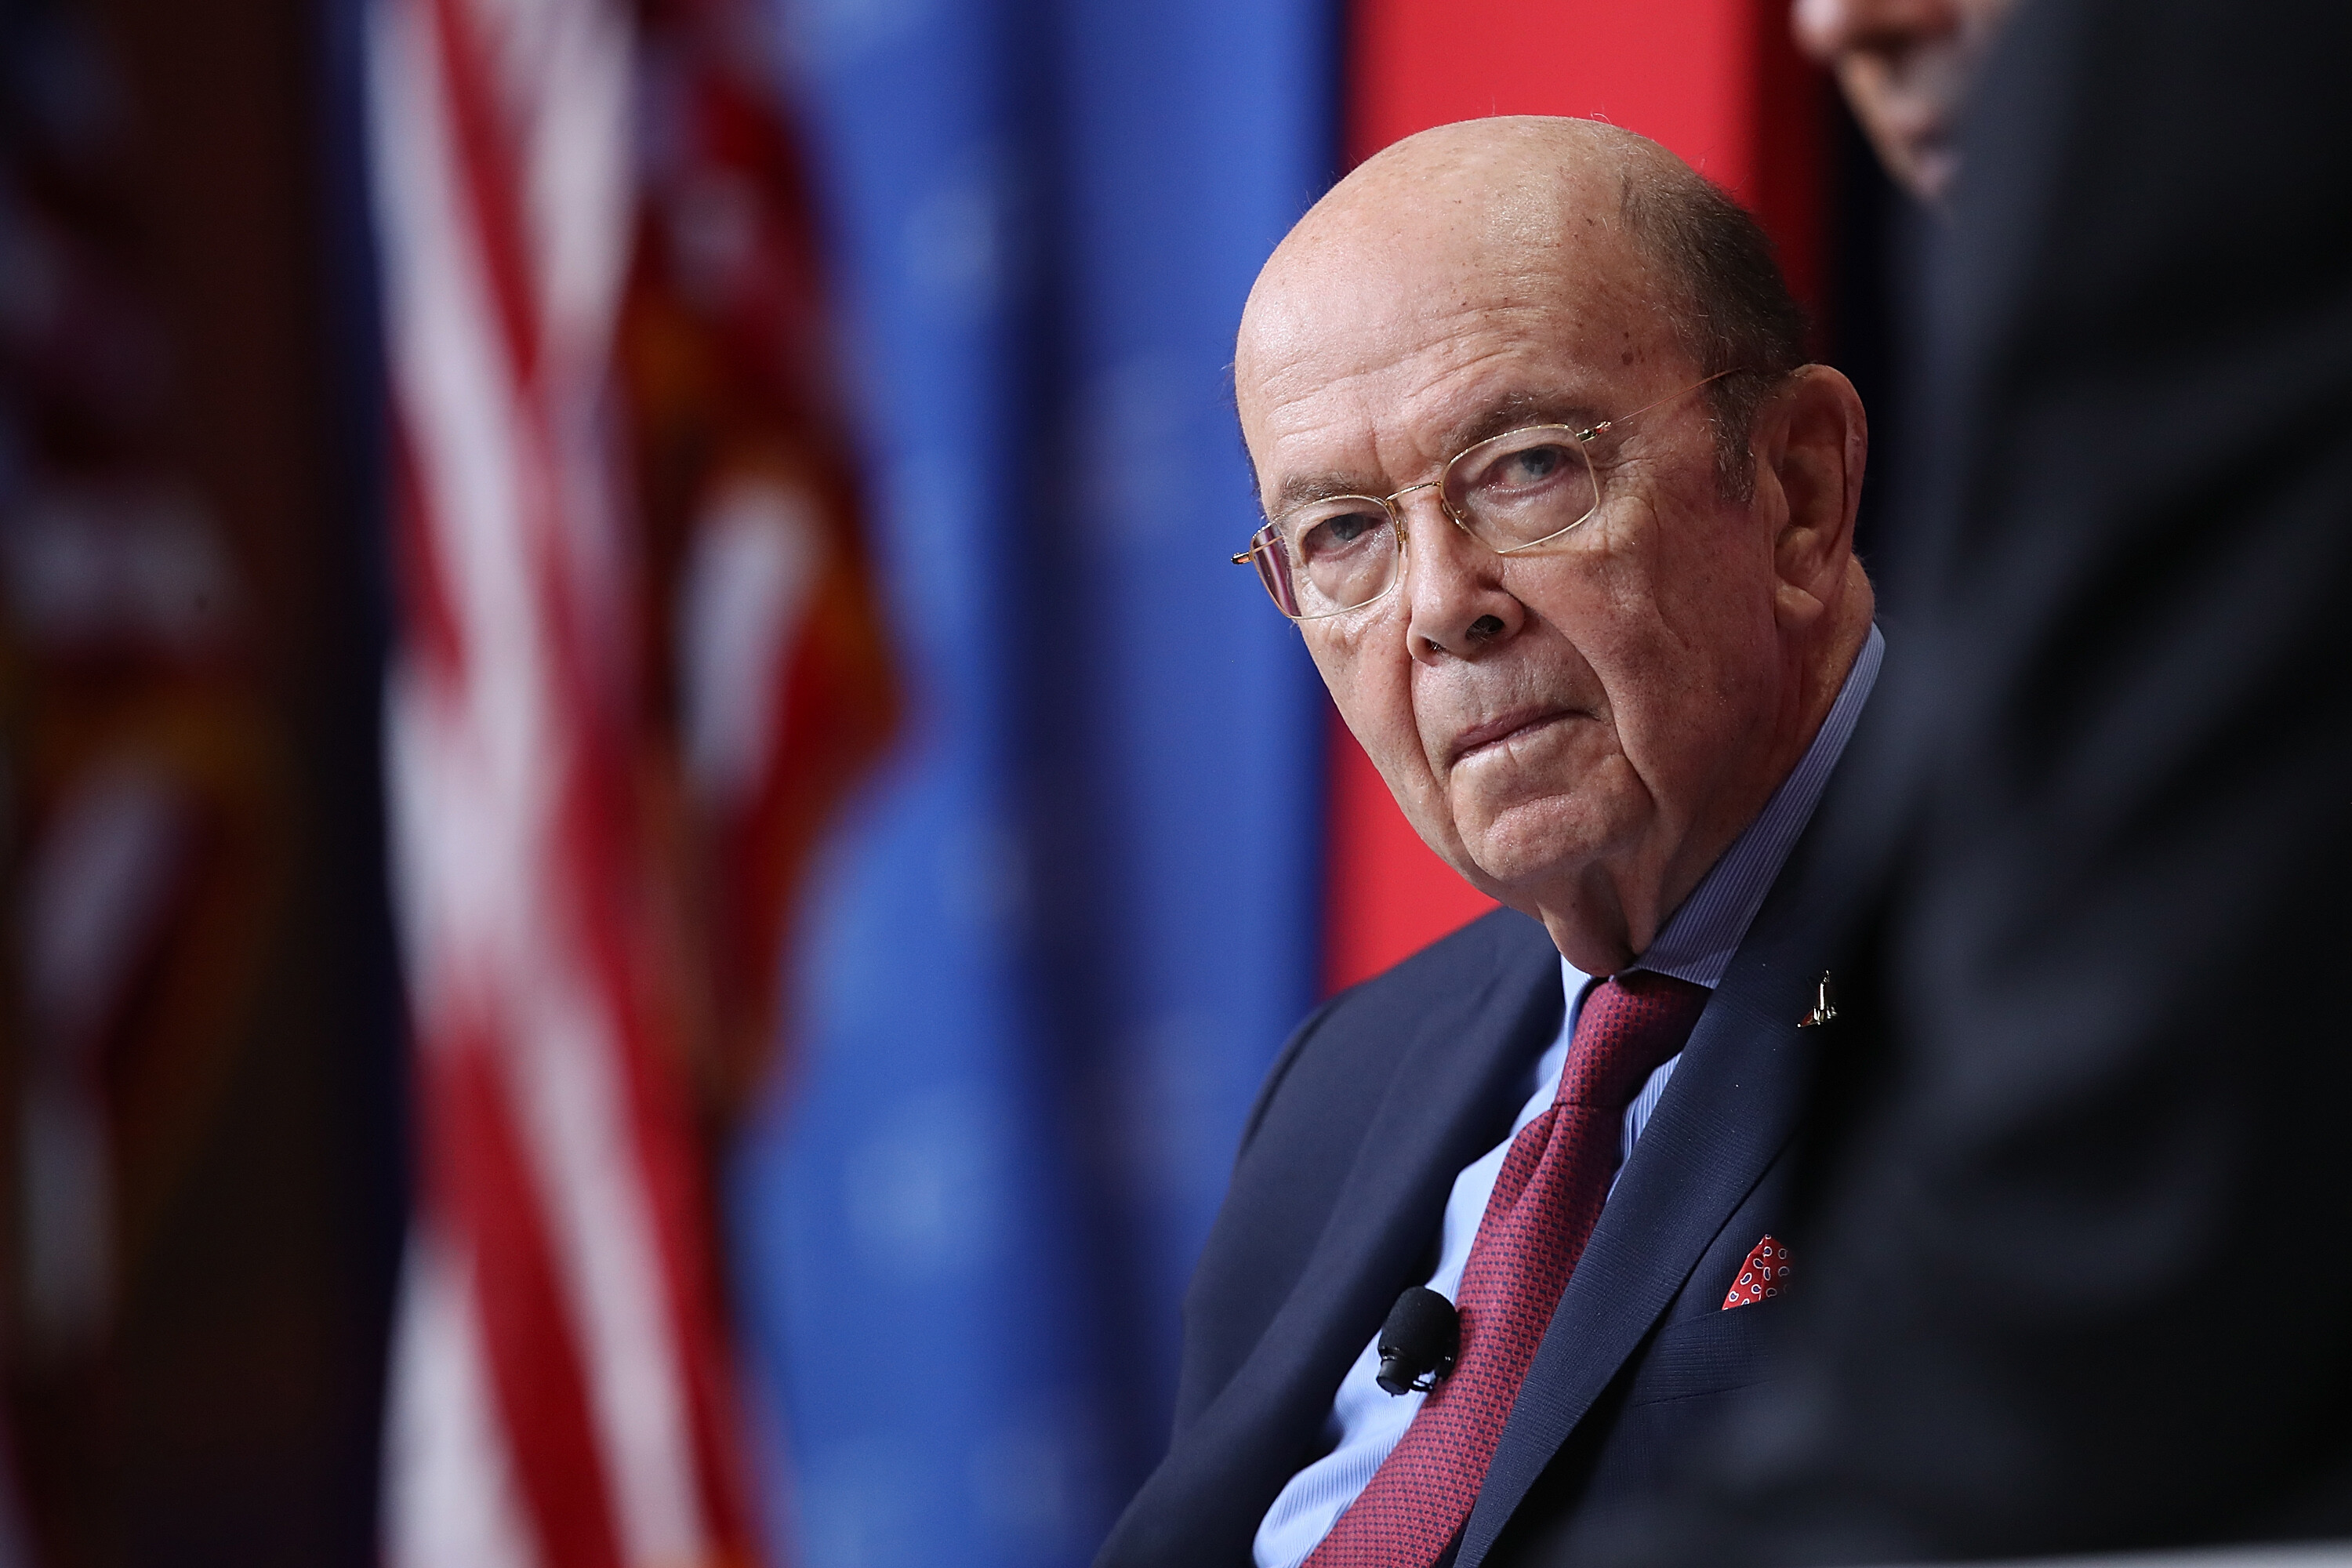 Justice Department won't prosecute Wilbur Ross for misleading Congress about attempted 2020 census change